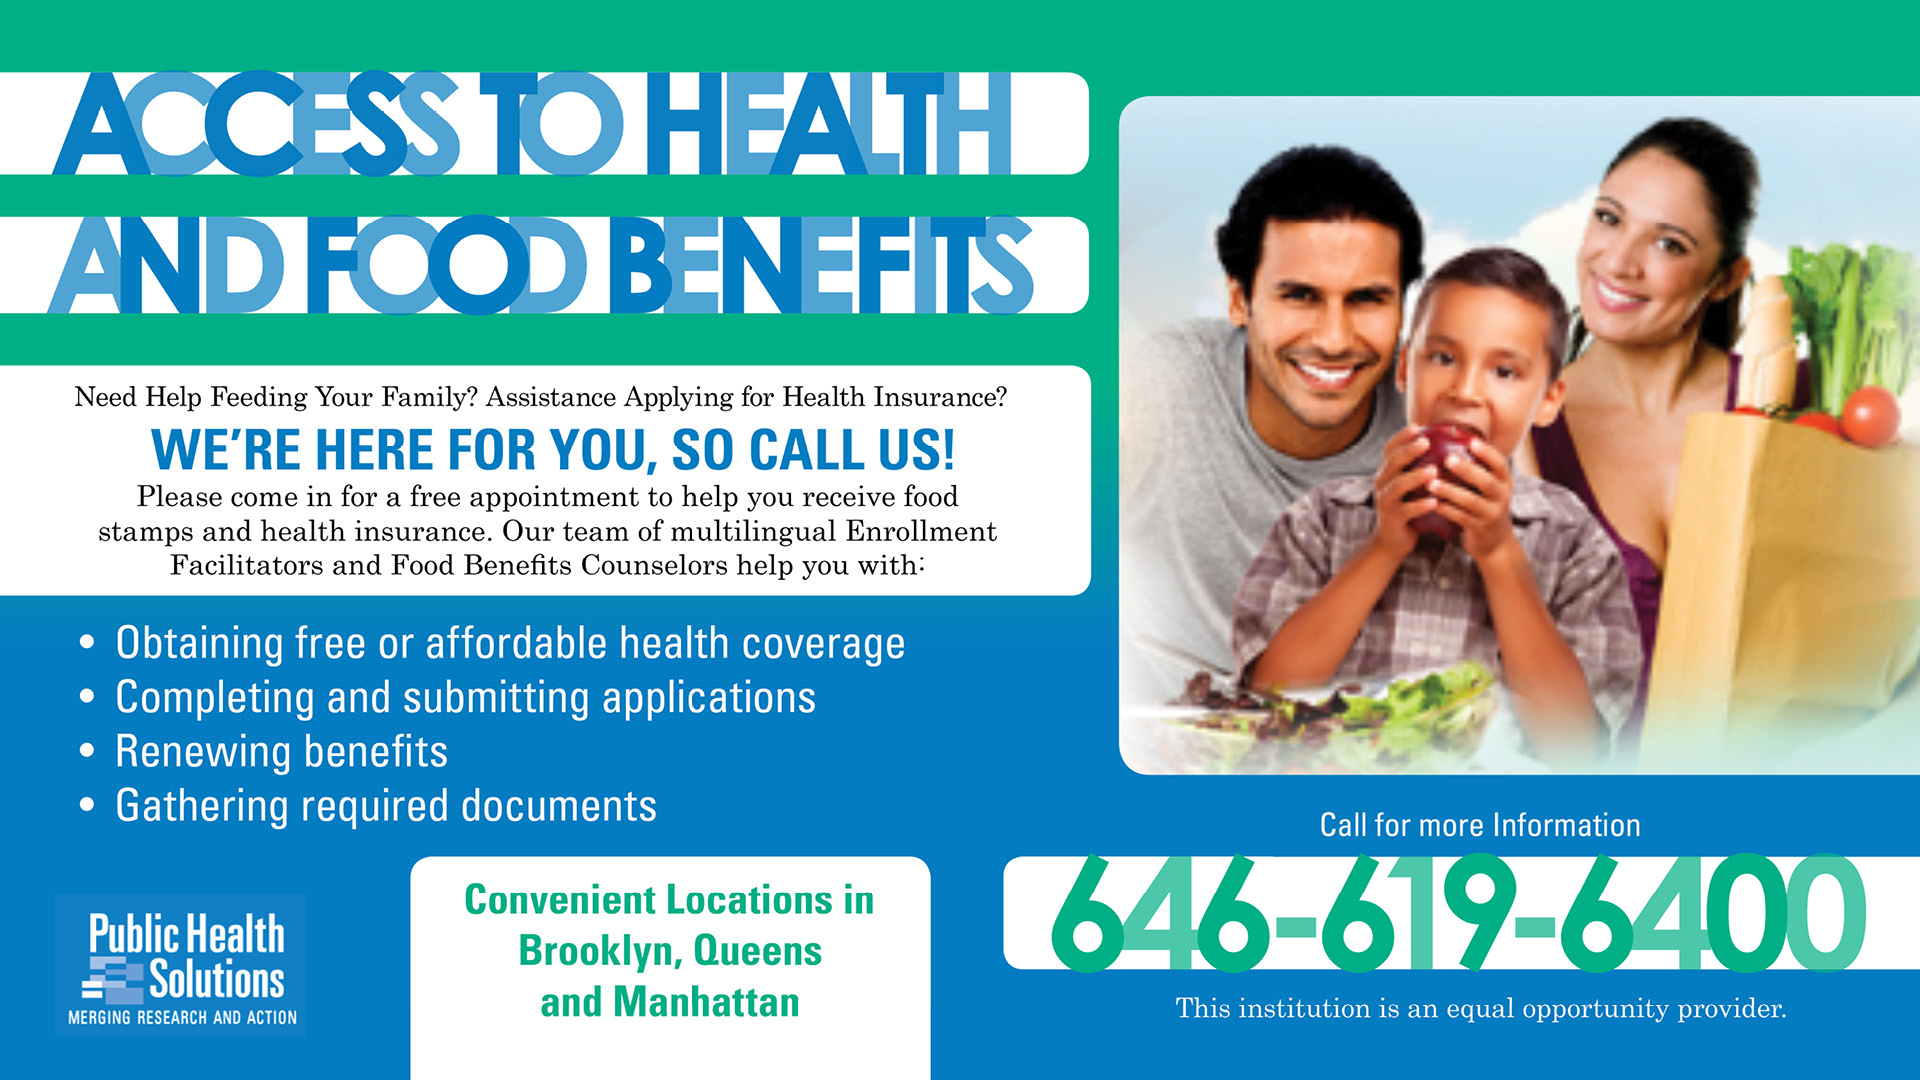 Access to Food and Health Benefits banner